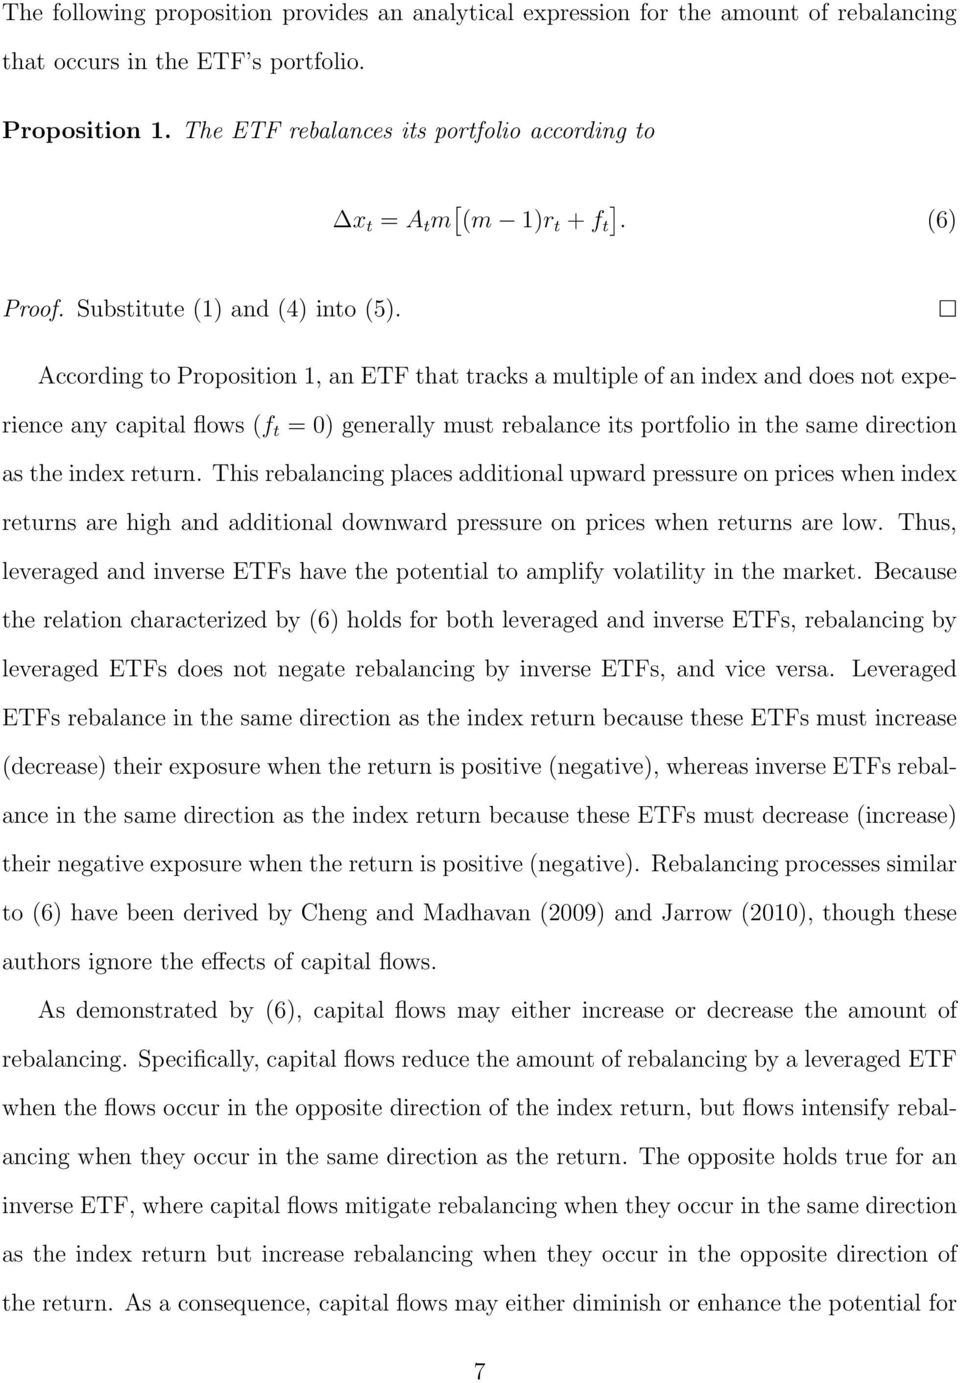 According to Proposition 1, an ETF that tracks a multiple of an index and does not experience any capital flows (f t = 0) generally must rebalance its portfolio in the same direction as the index